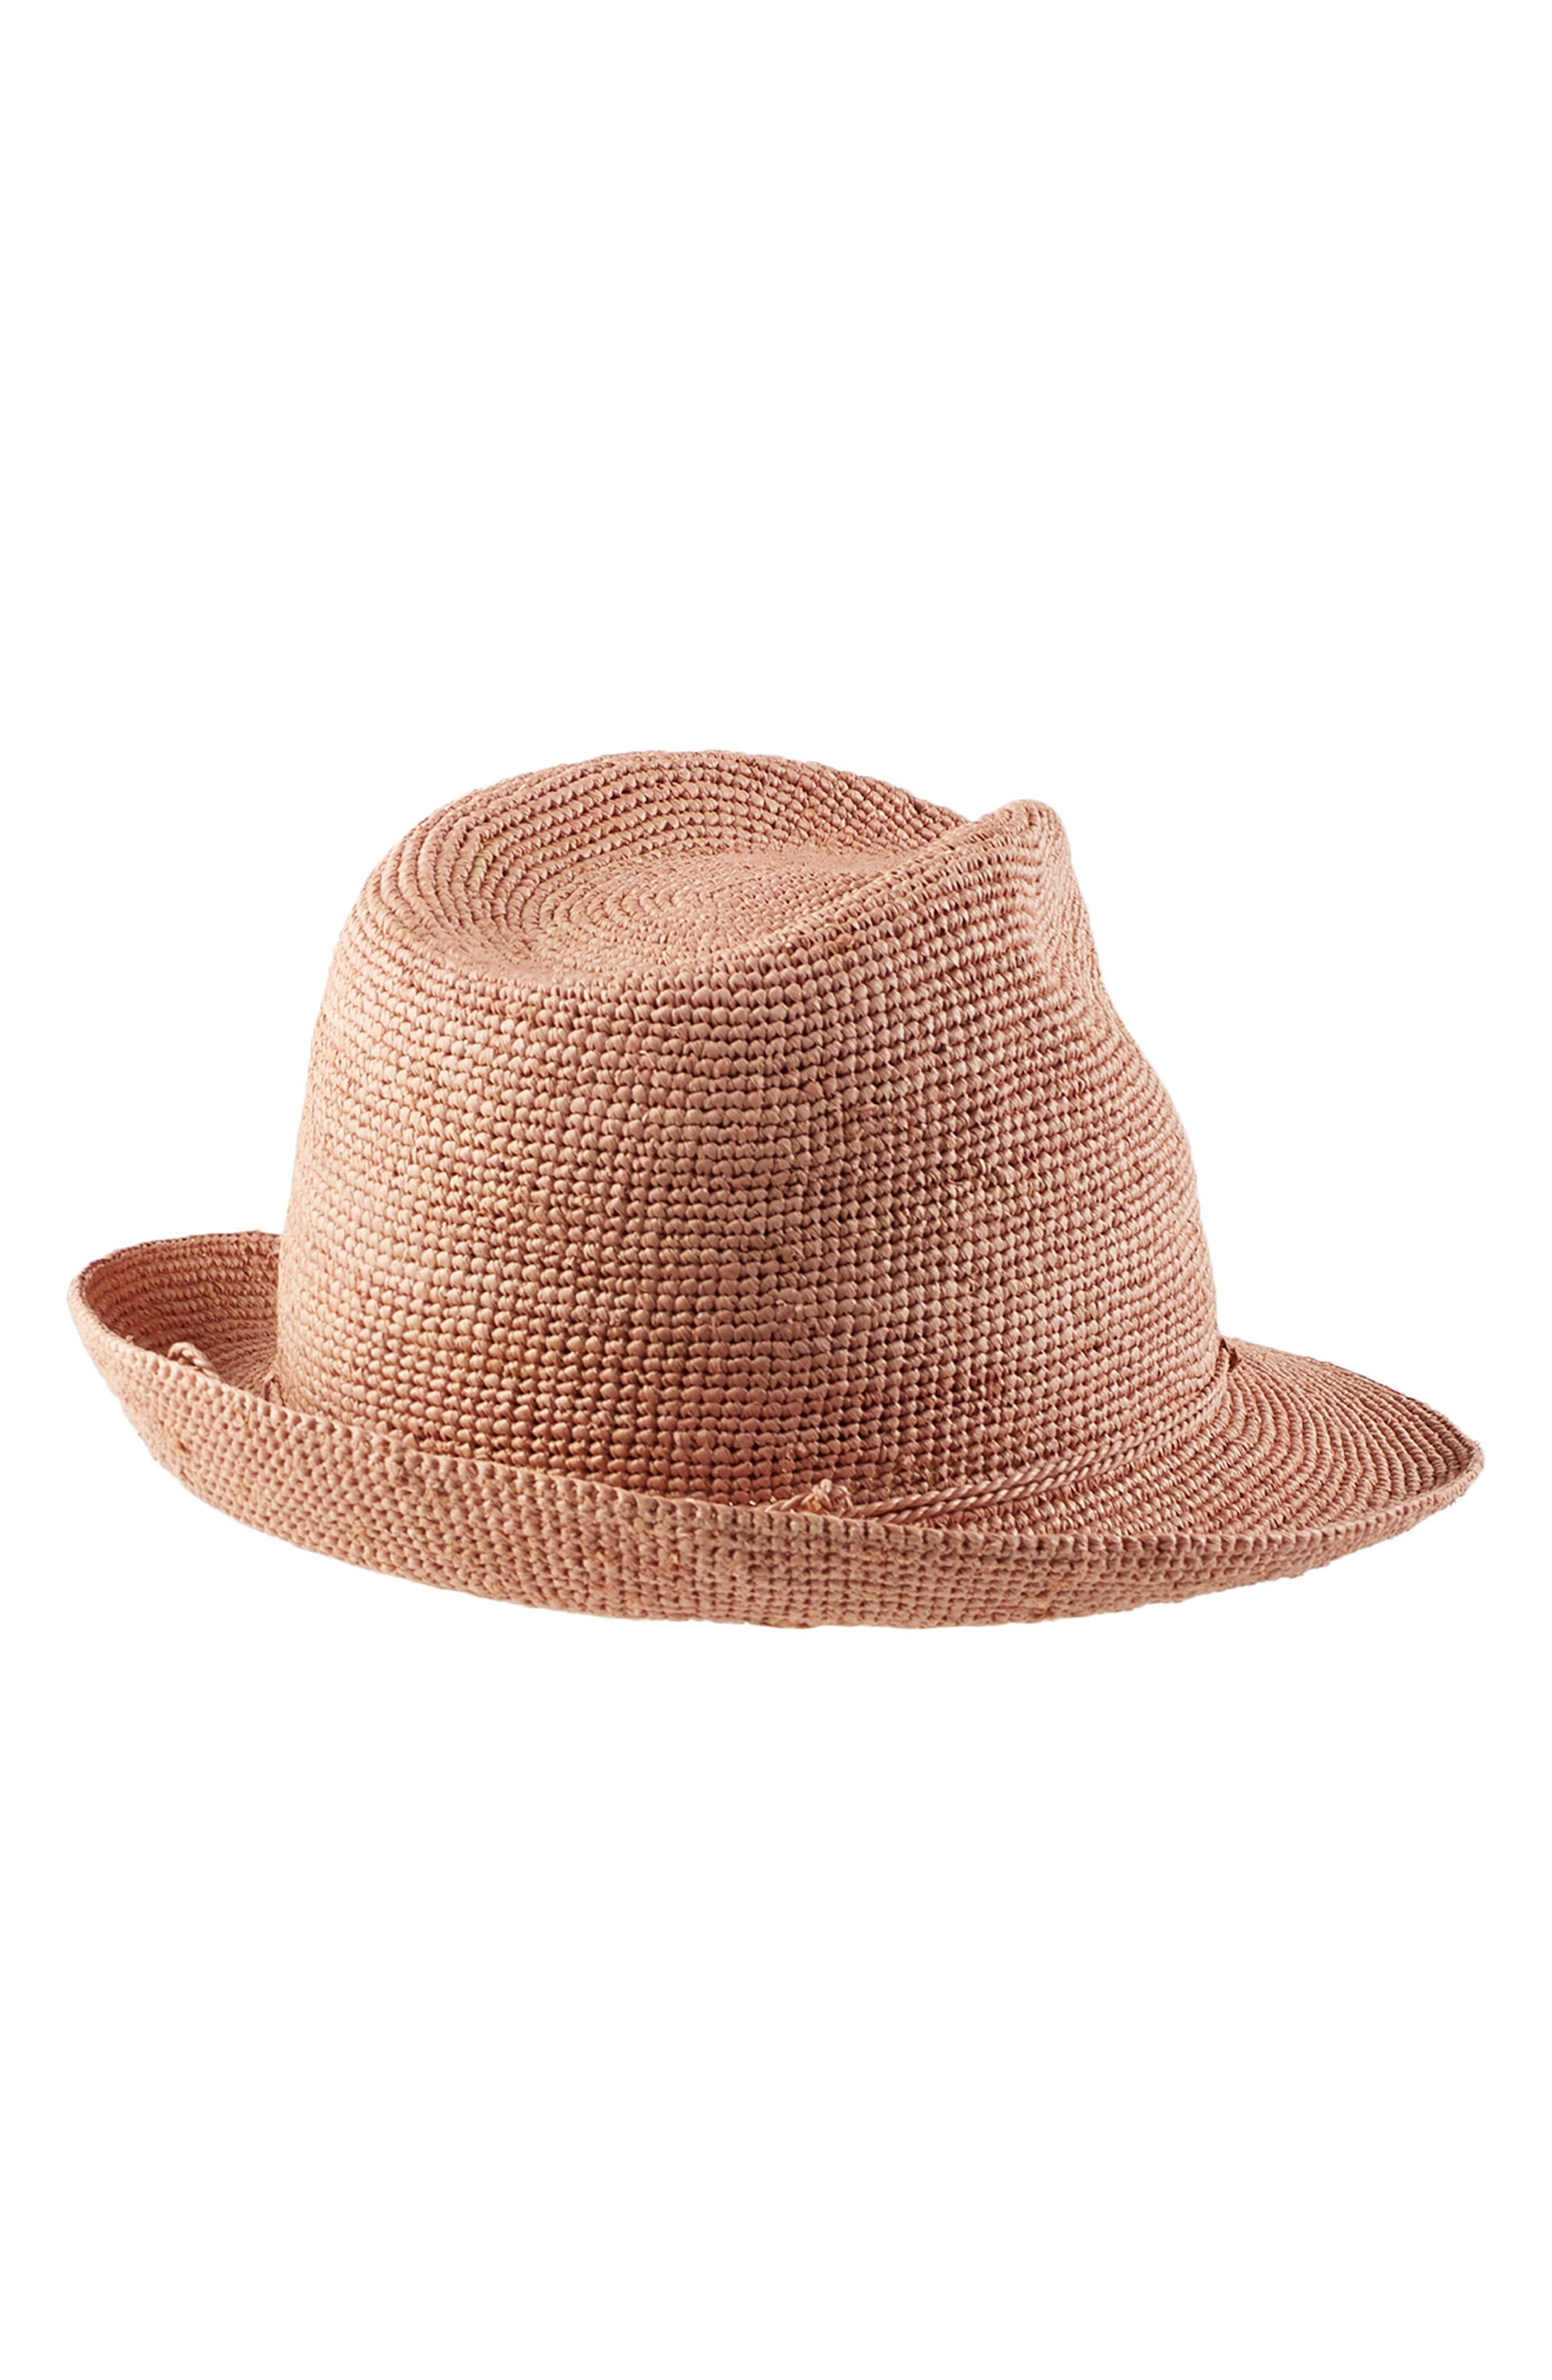 ,                             Raffia Crochet Packable Sun Hat,                             Alternate thumbnail 2, color,                             LIGHT MUSK